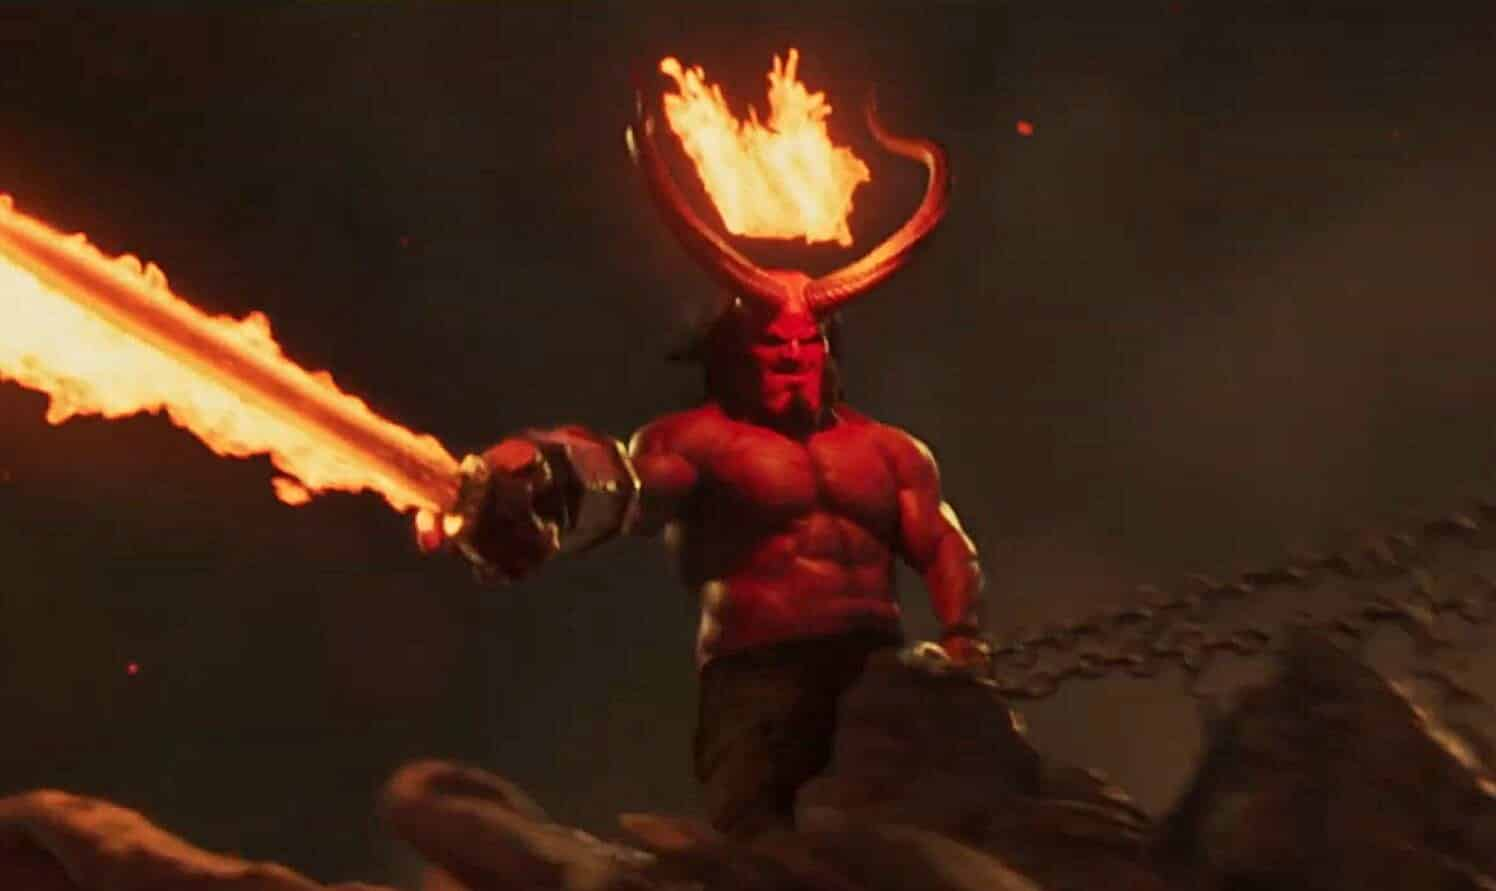 Movie Poster 2019: New 'Hellboy' Trailer Brings Plenty Of Blood And Gore